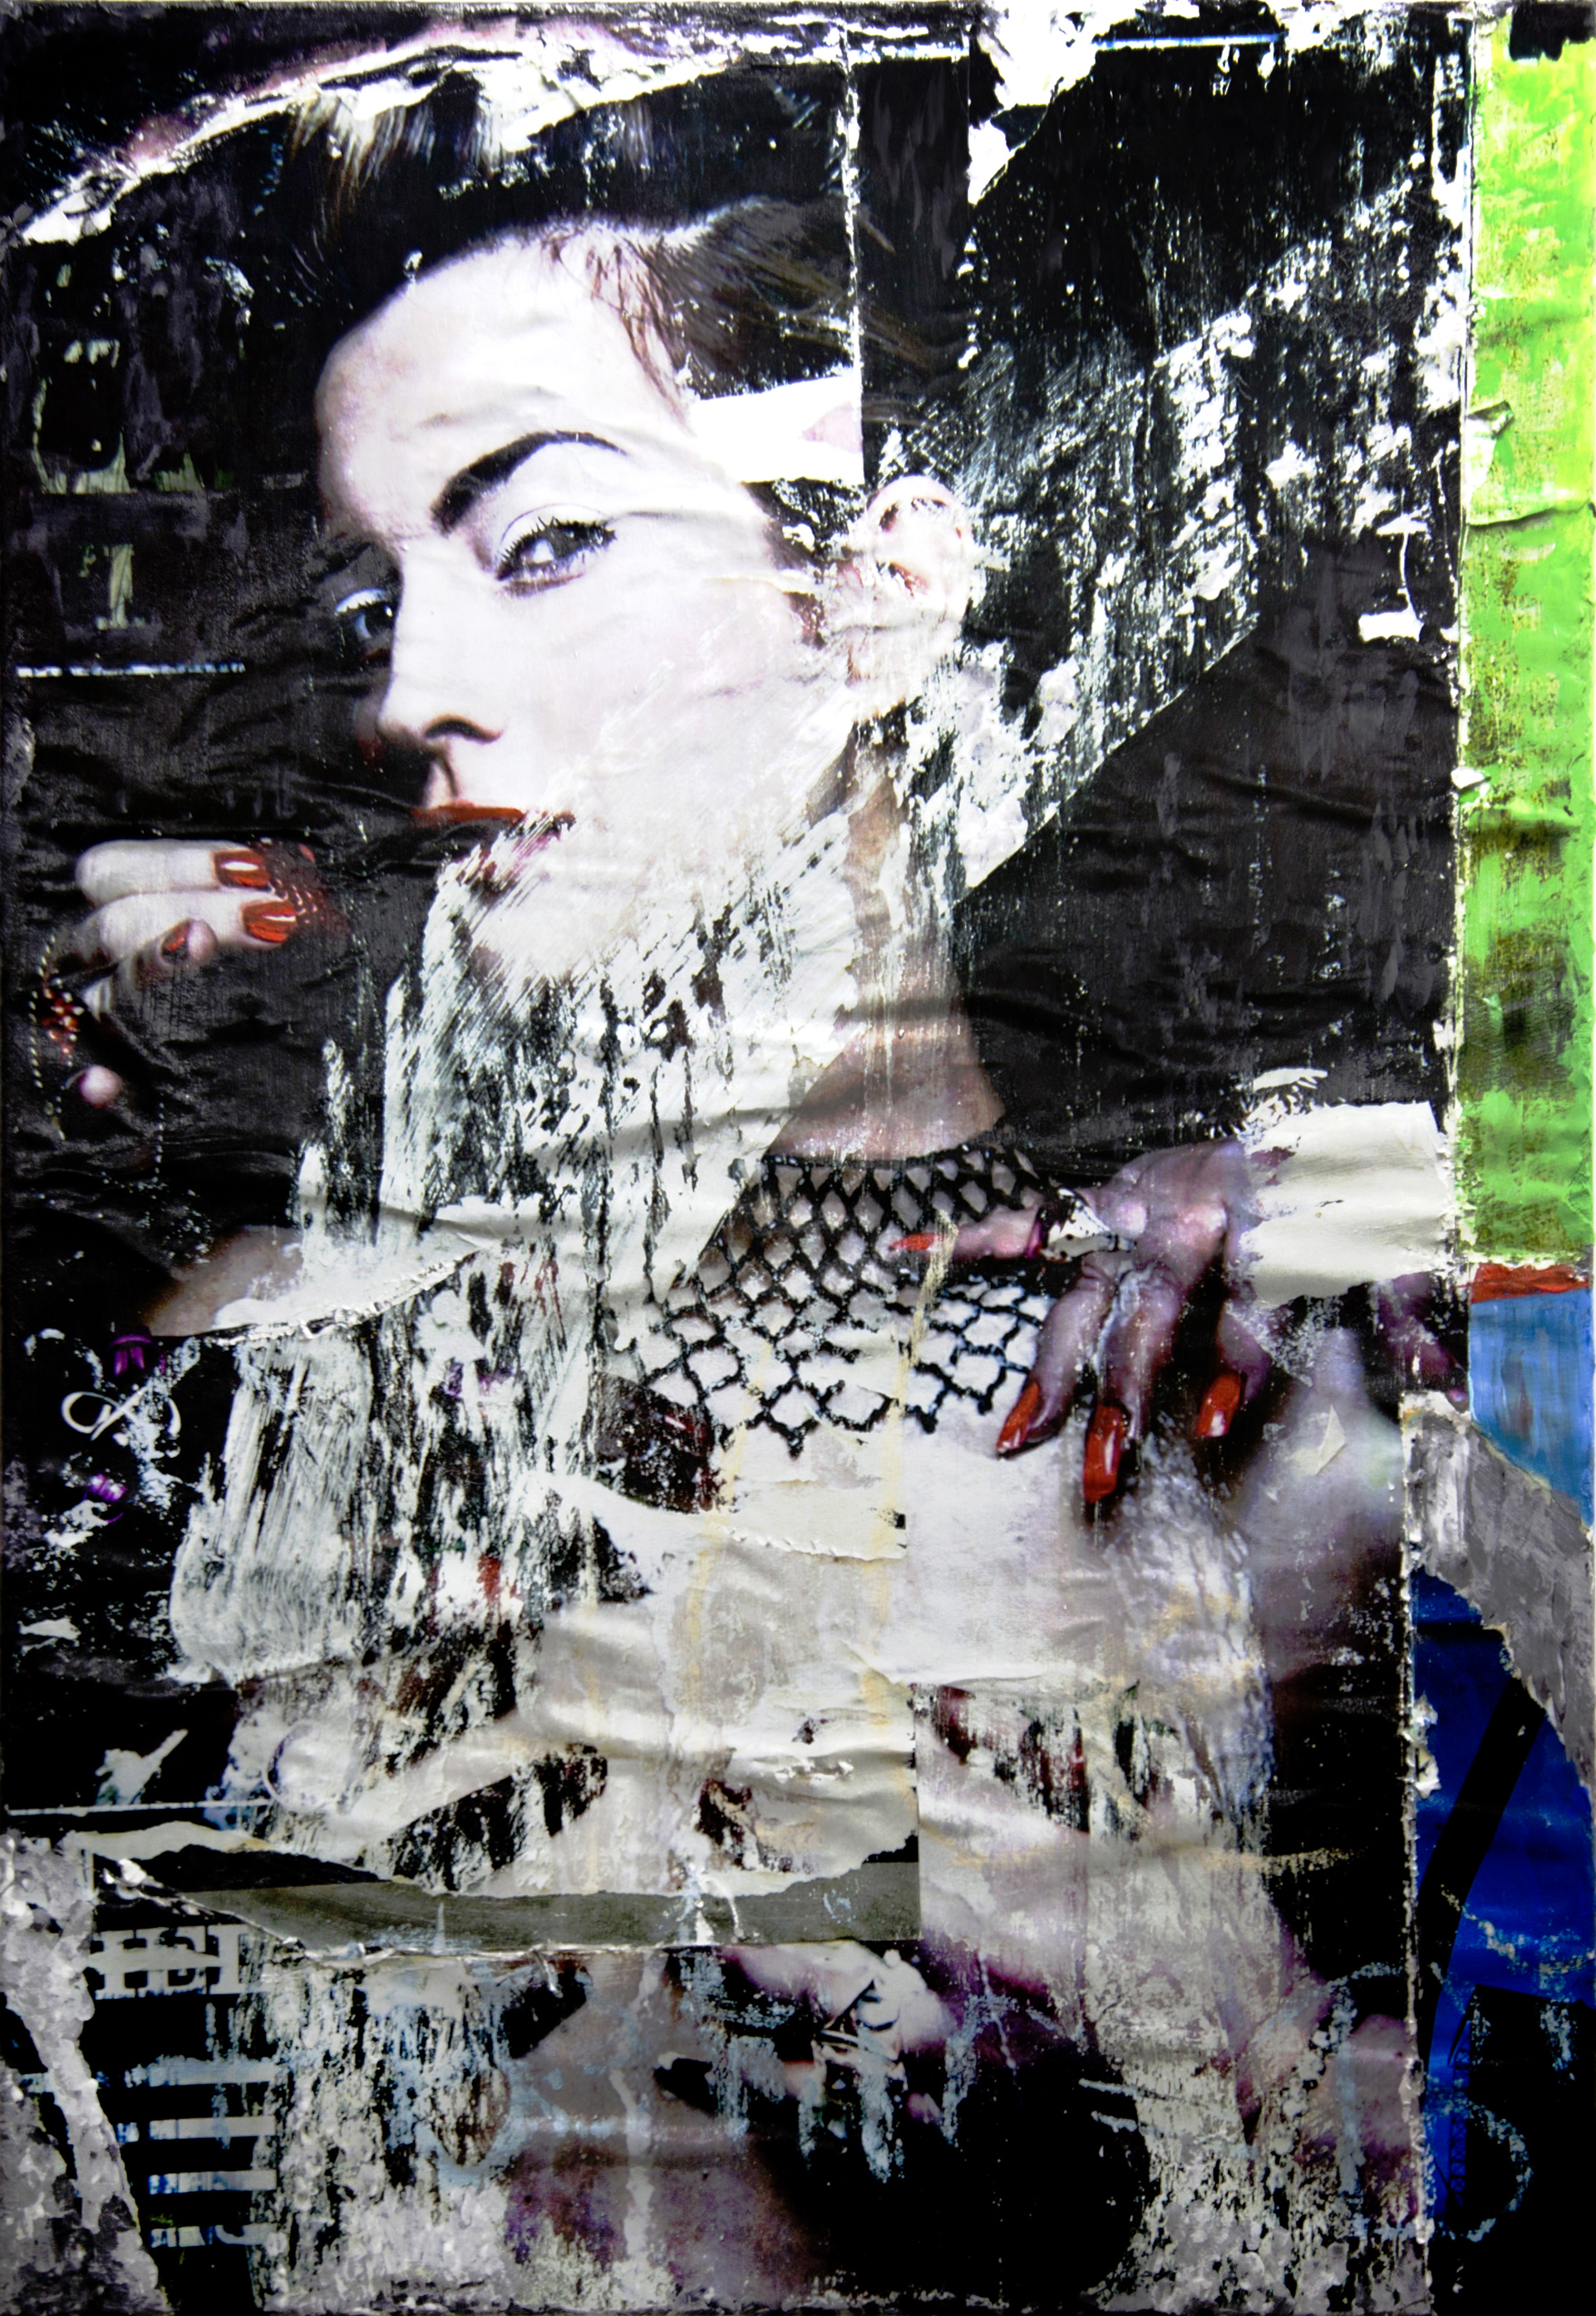 decollage_6609 © 2011, 70x100 cm, canvas, affichepaper, acryllic, clear laquer Copyright by the artist. Courtesy of private collection, Berlin/Germany